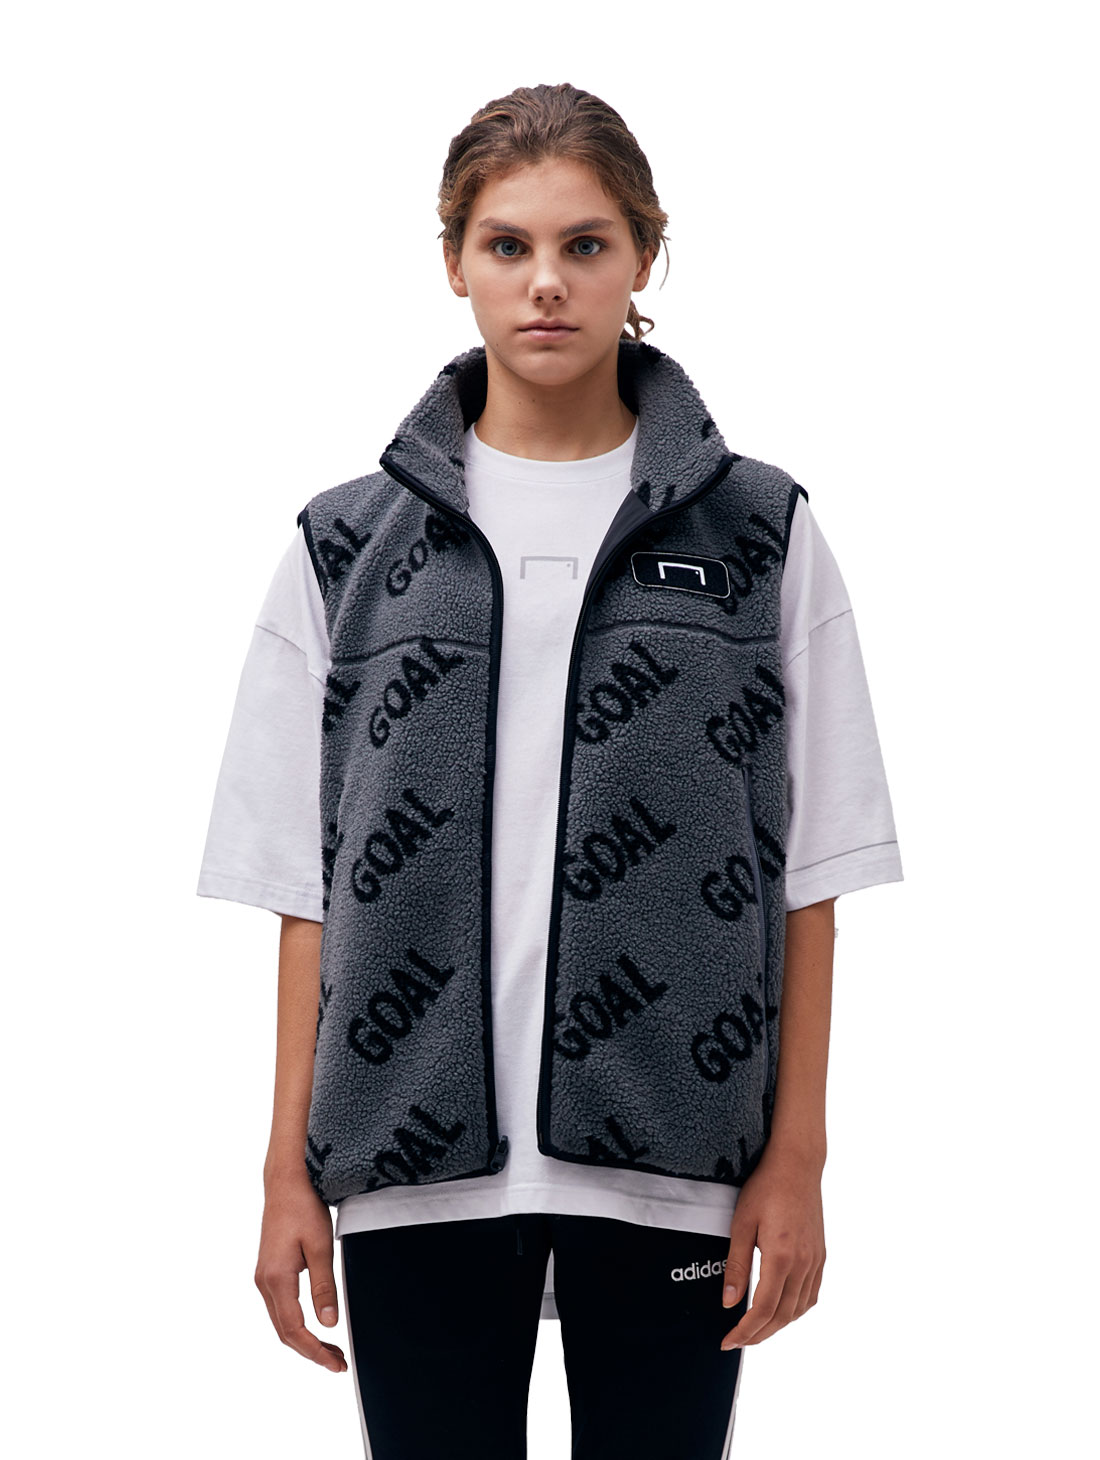 GOALSTUDIO REVERSIBLE FLEECE VEST - GREY/BLACK